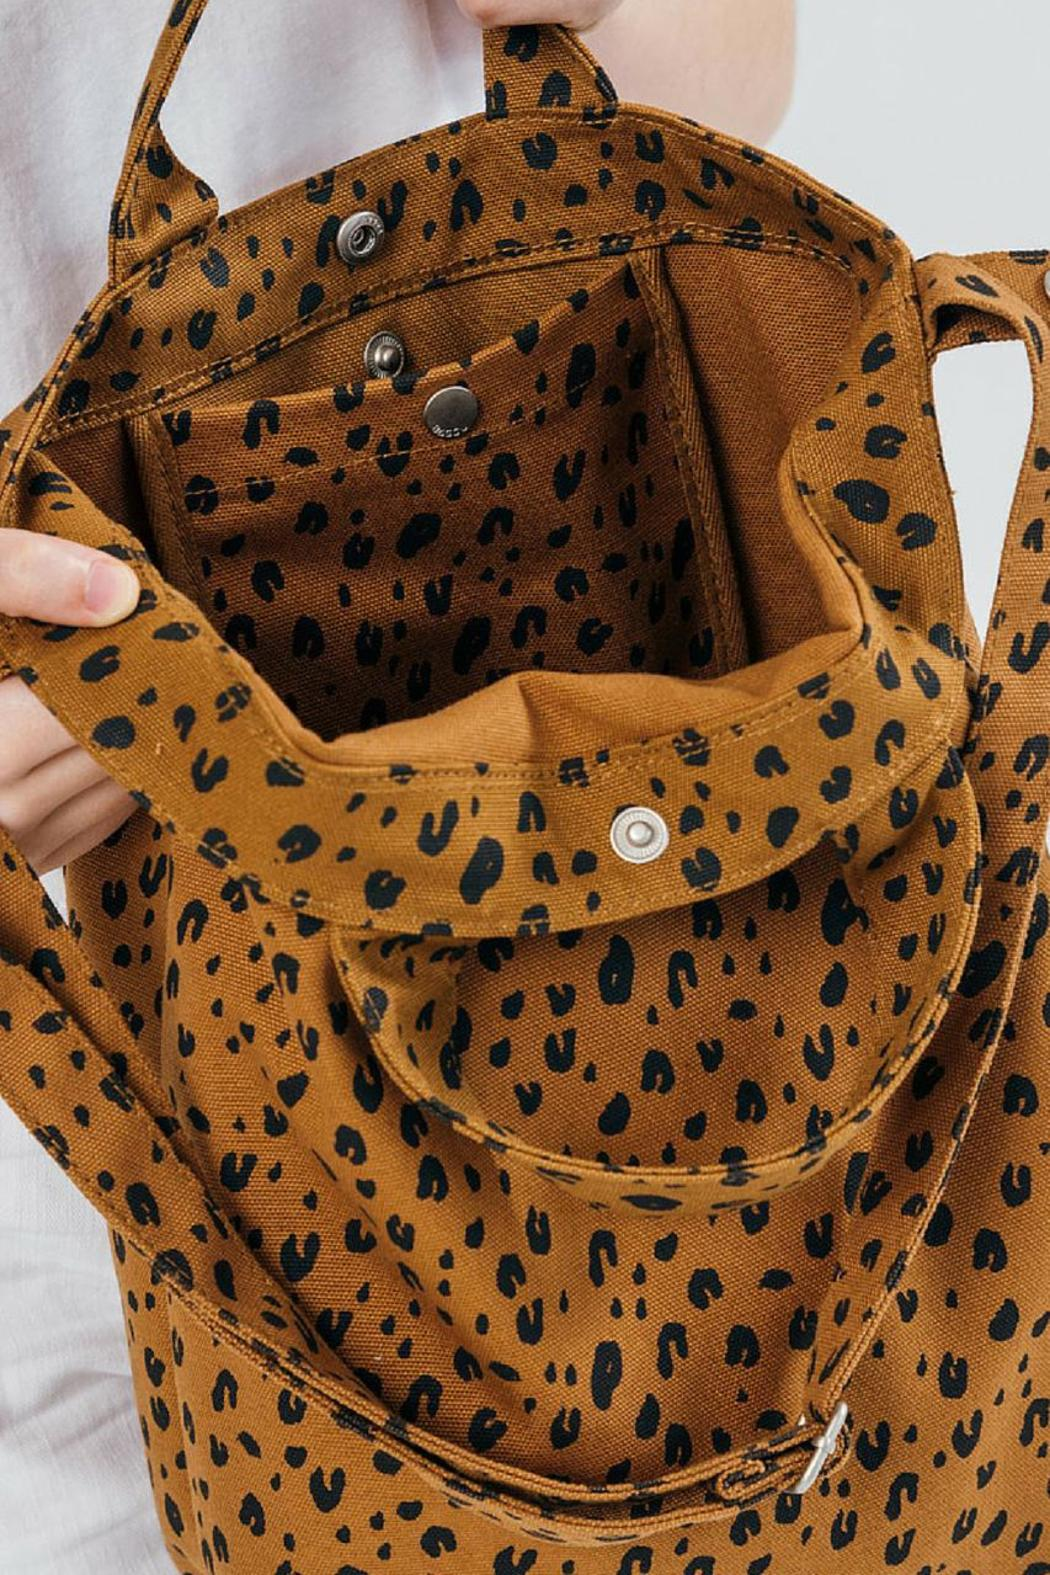 Baggu Duck Leopard Bag From Rhode Island By Barrecoast